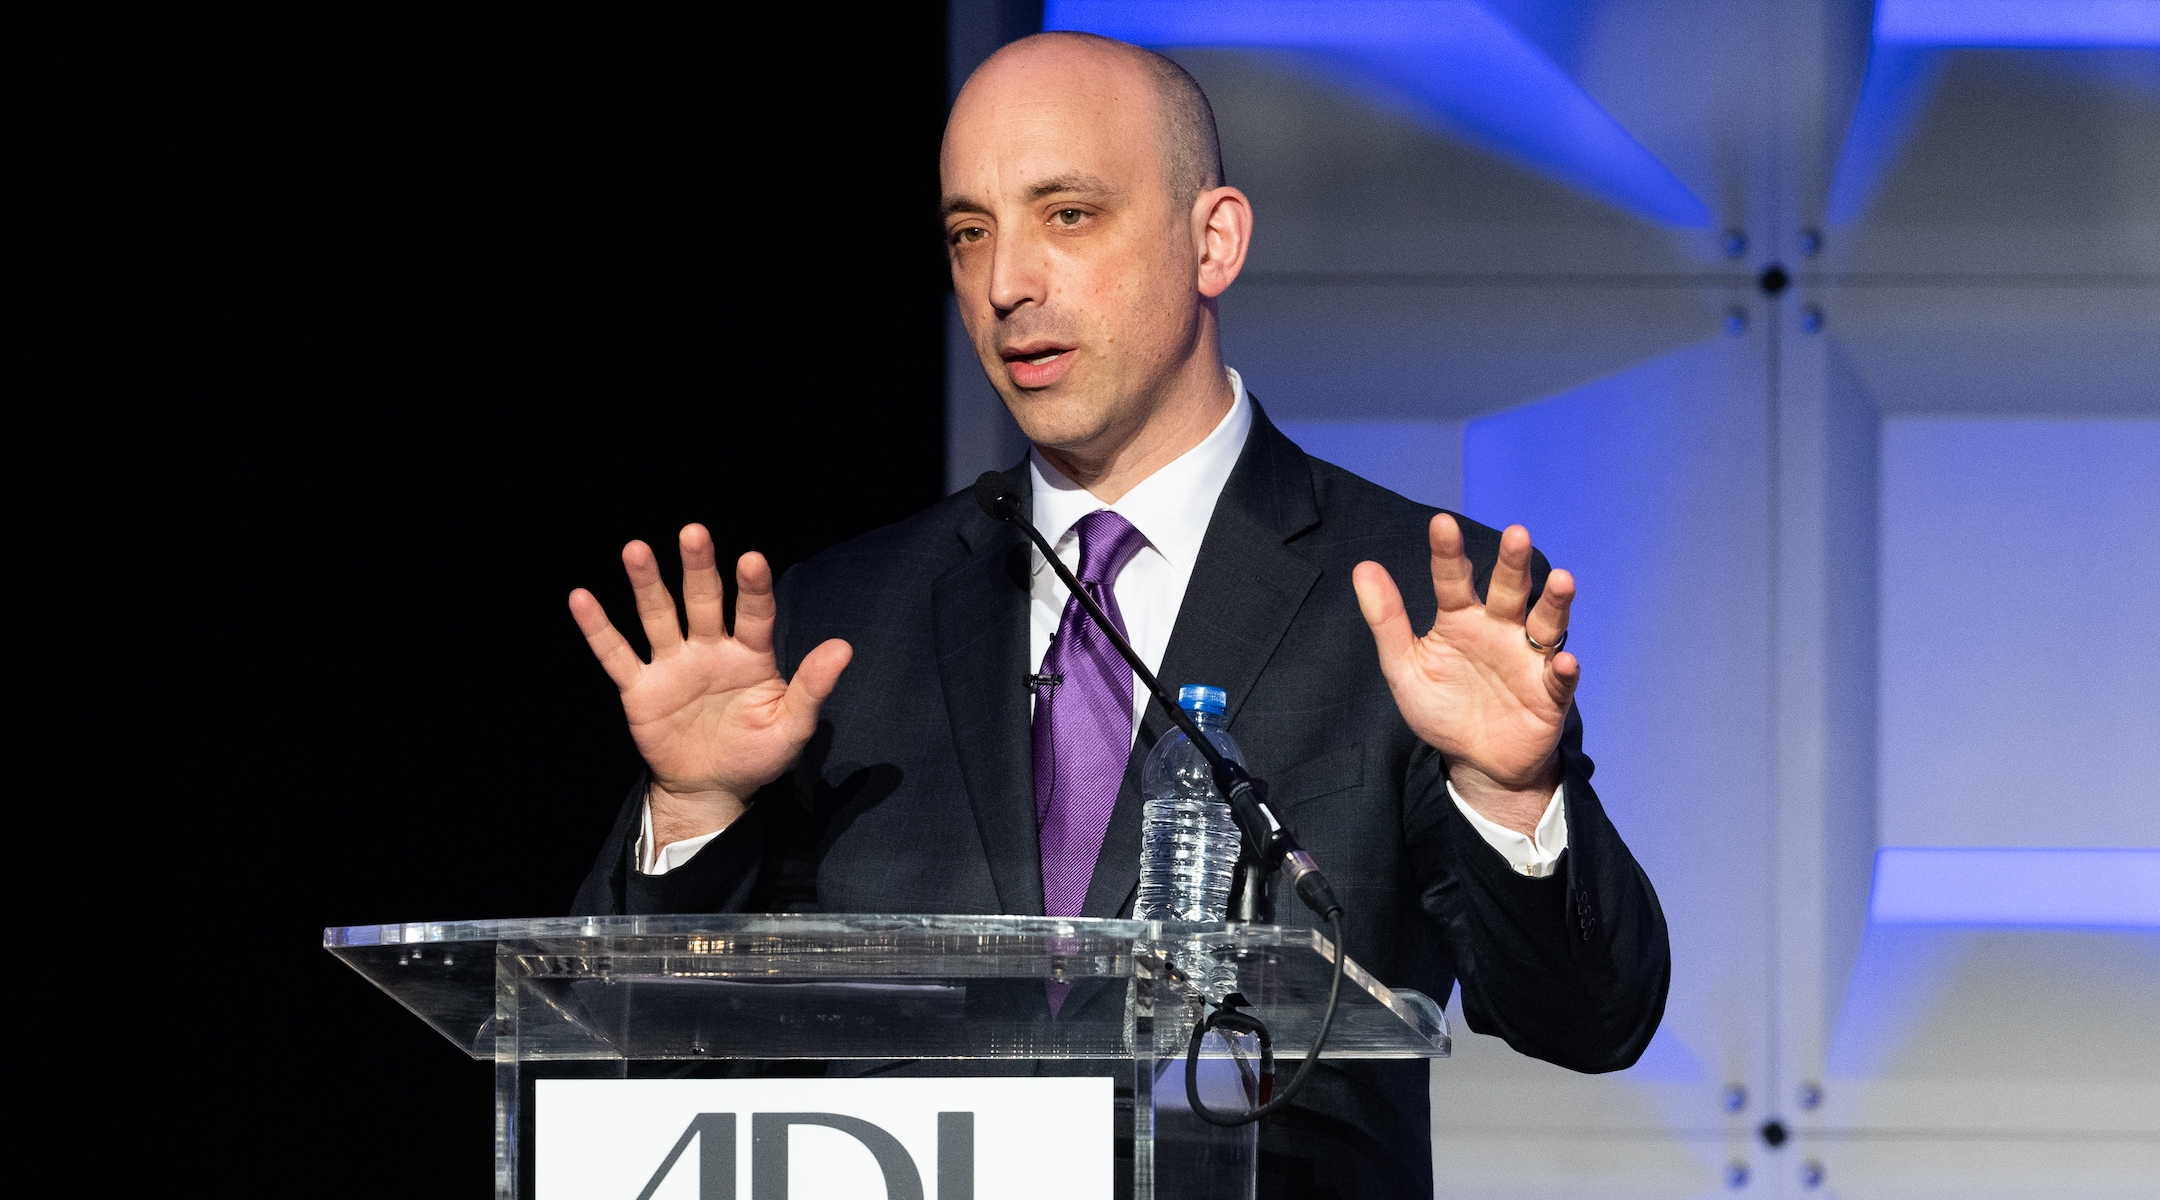 Anti-Defamation League CEO Jonathan Greenblatt speaks at the group's 2018 National Leadership Summit in Washington, DC. (Michael Brochstein/SOPA Images/LightRocket via Getty Images)